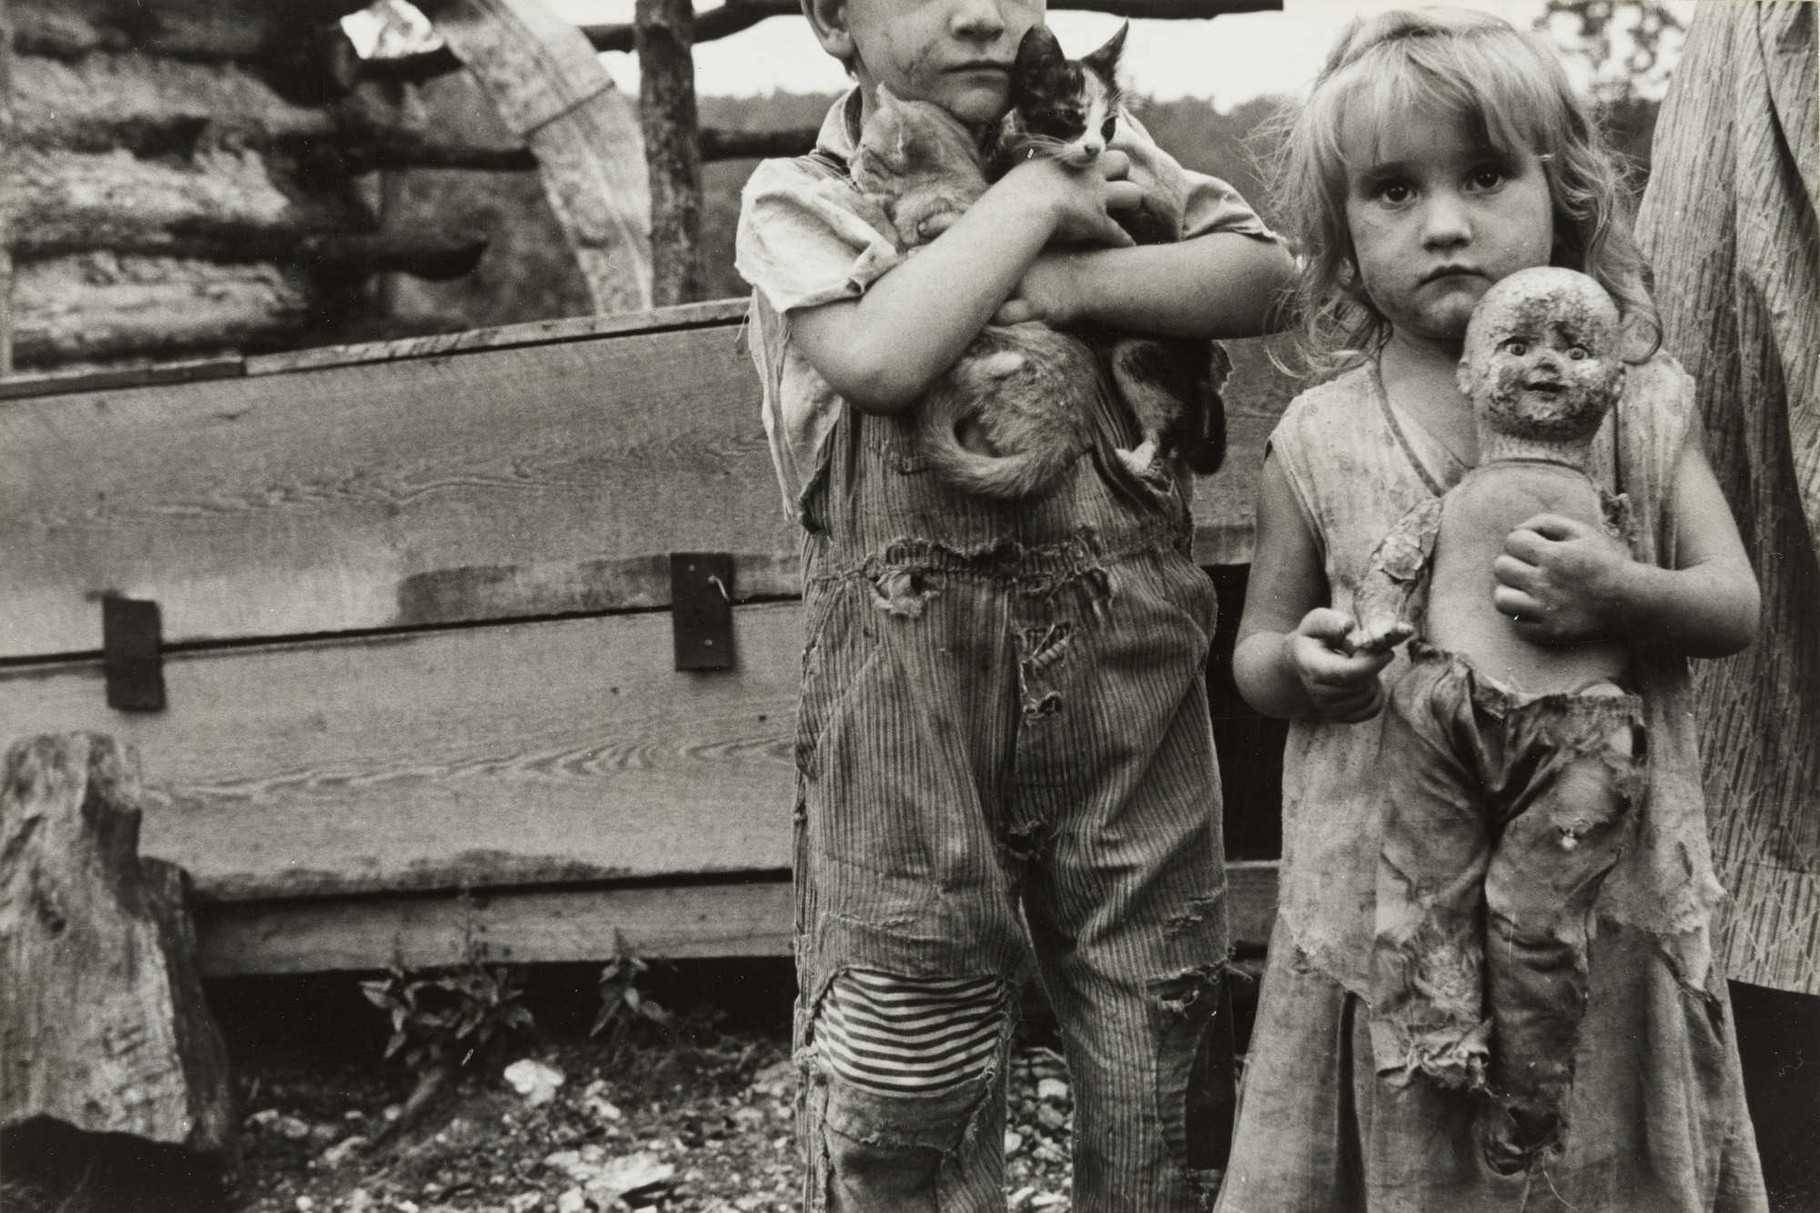 Children of Destitute Mountaineer, Arkansas (1935). Ben Shahn